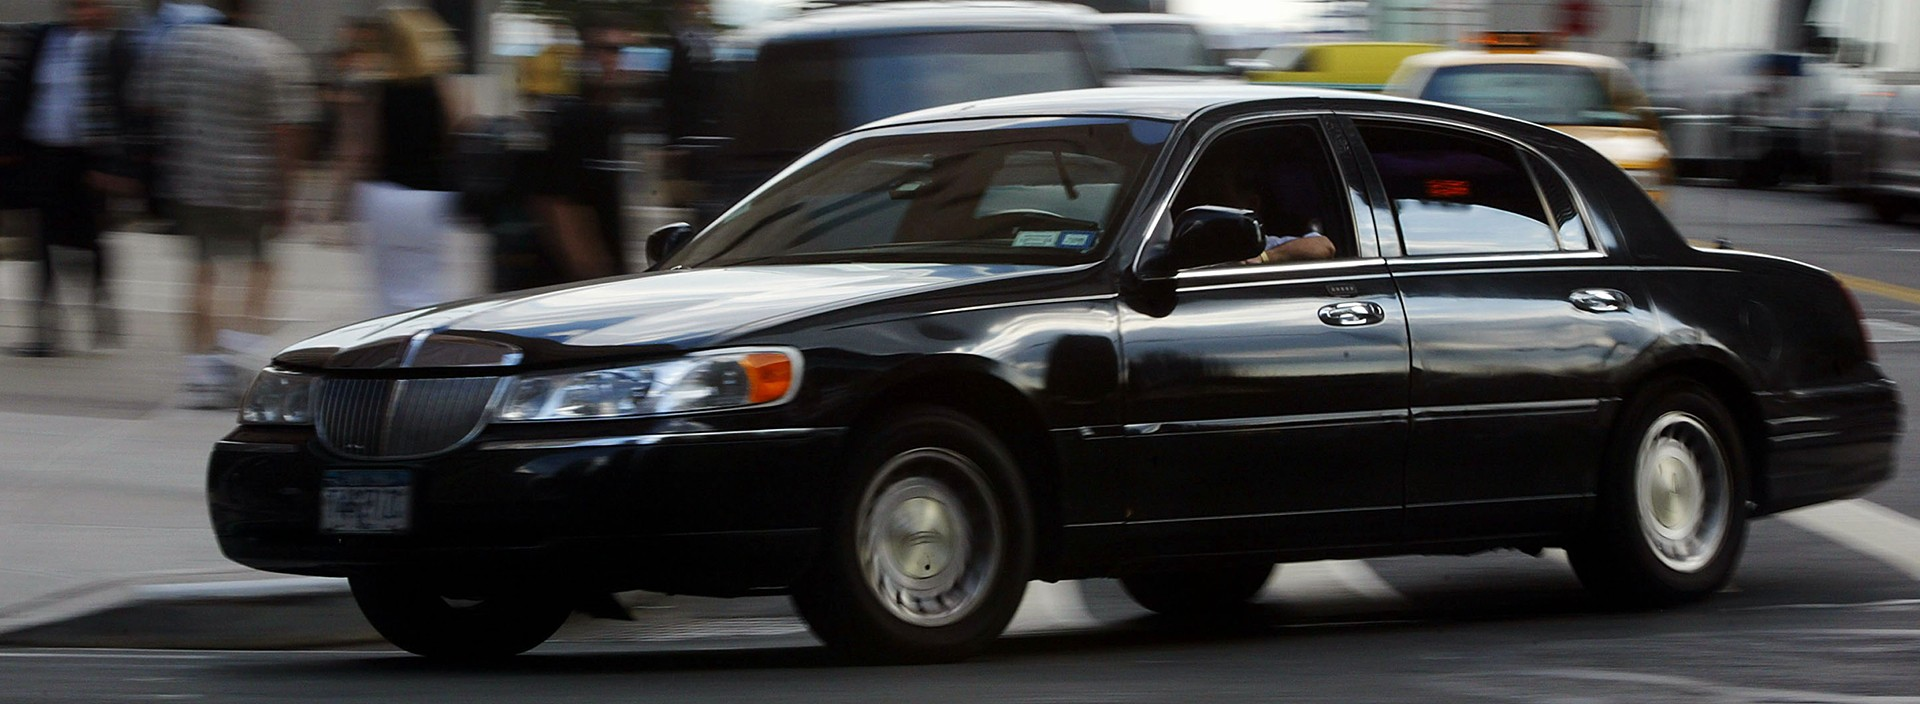 Car Services From Lax To Orange County